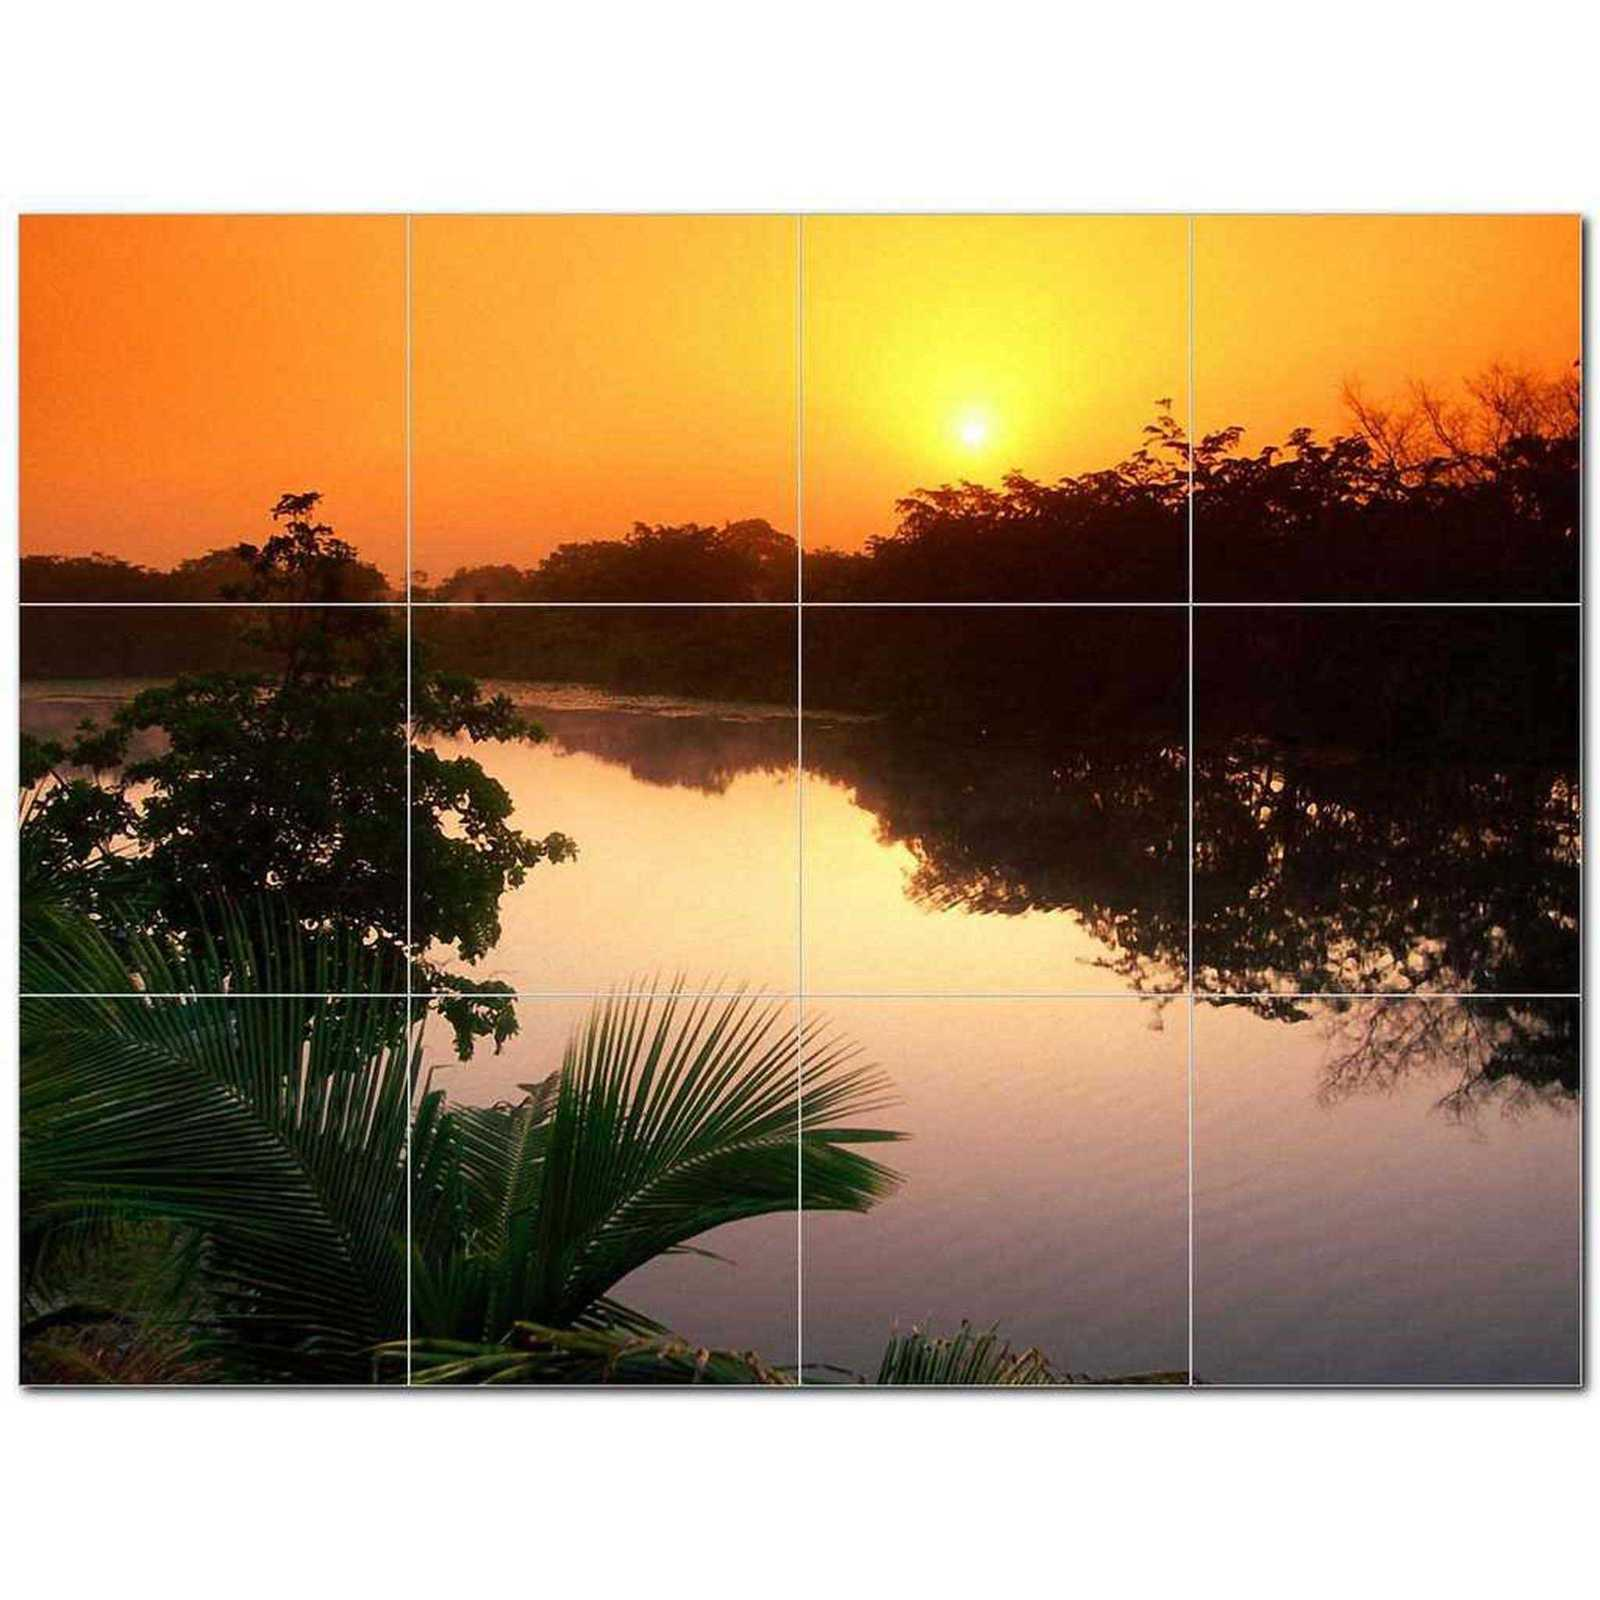 Primary image for Sunset Photo Ceramic Tile Mural Kitchen Backsplash Bathroom Shower BAZ405923